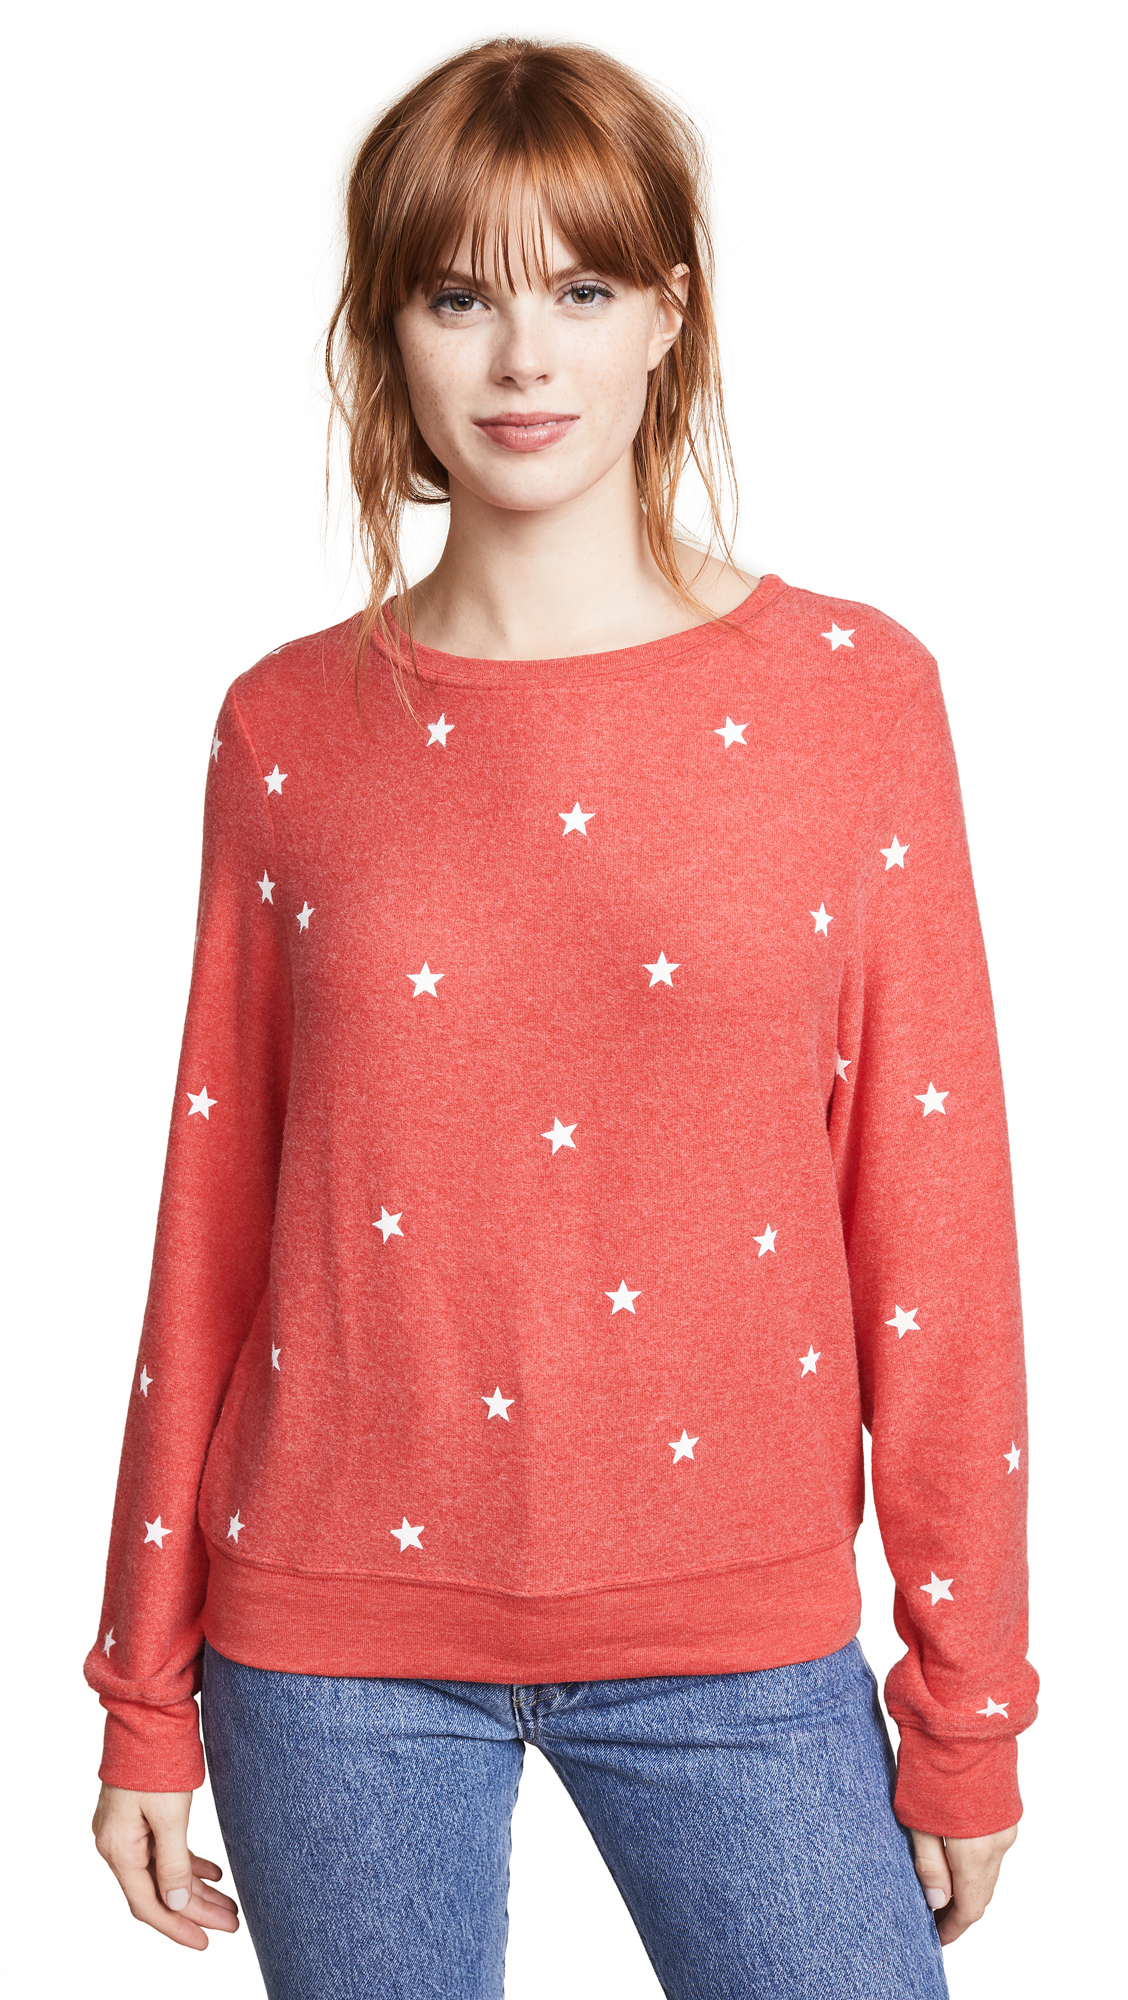 Wildfox Star Baggy Beach Jumper Sweatshirt In Hot Lipstick